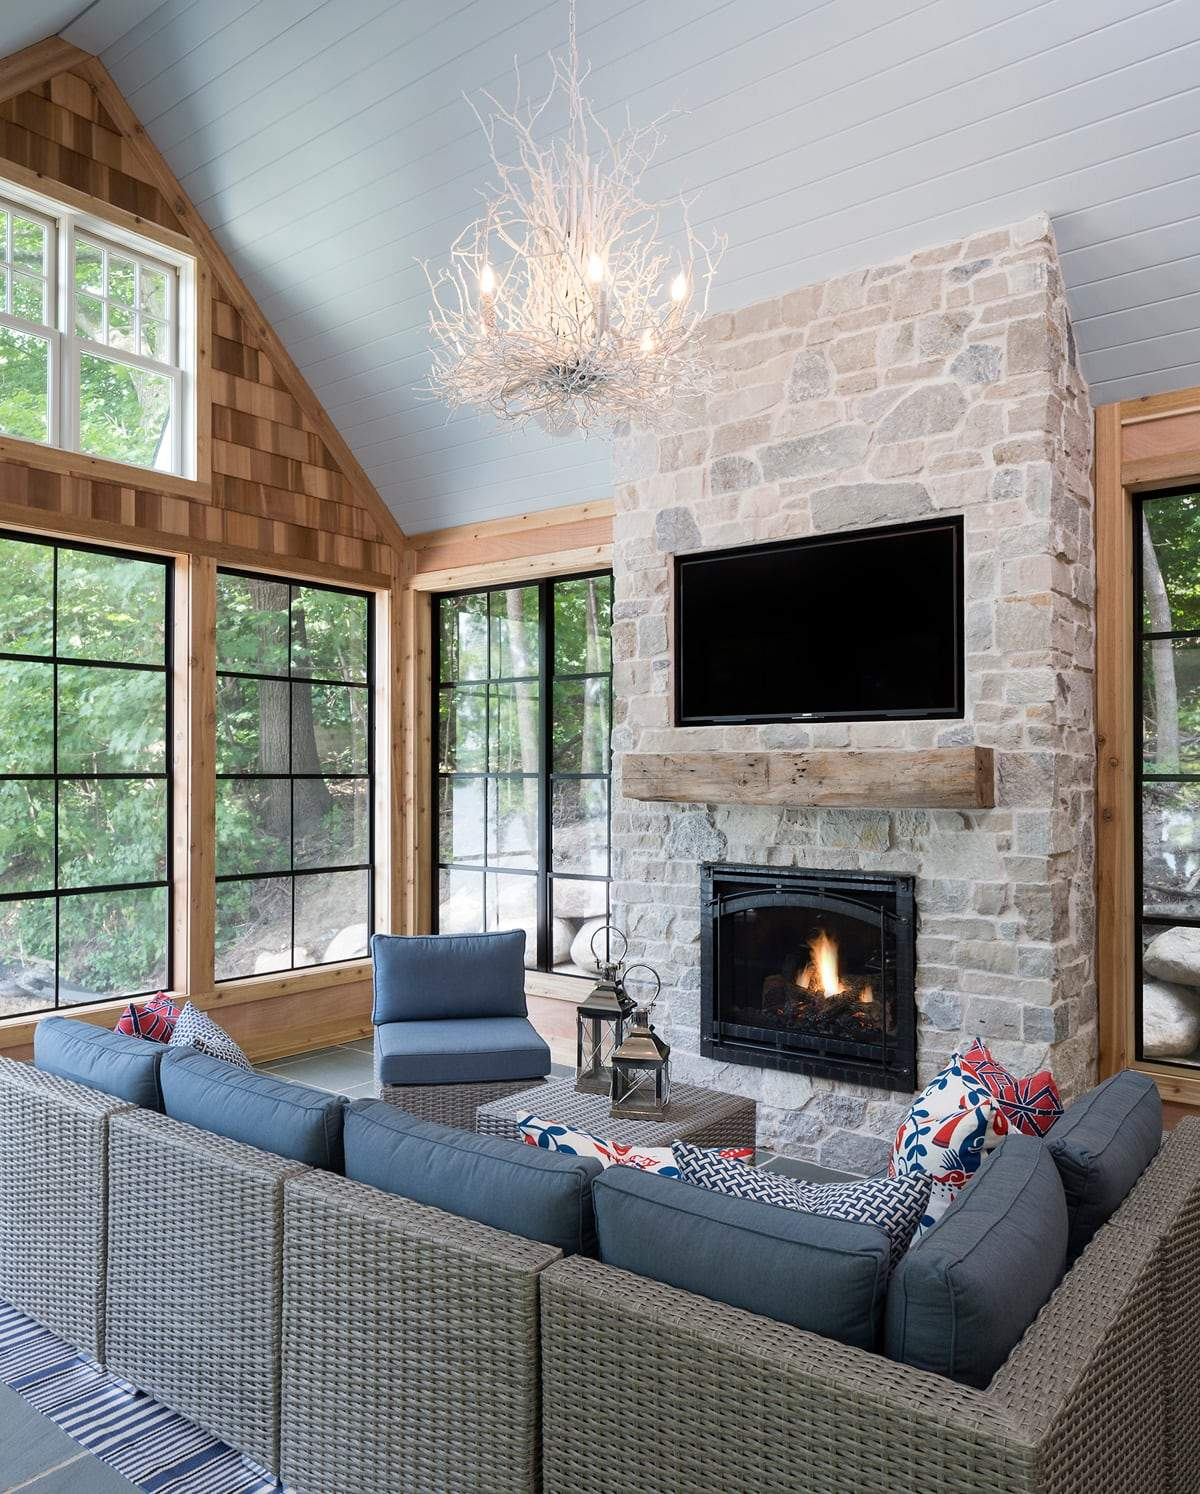 House Tour-Yes Please, A Fresh and Classic Weekend Retreat 9.jpg